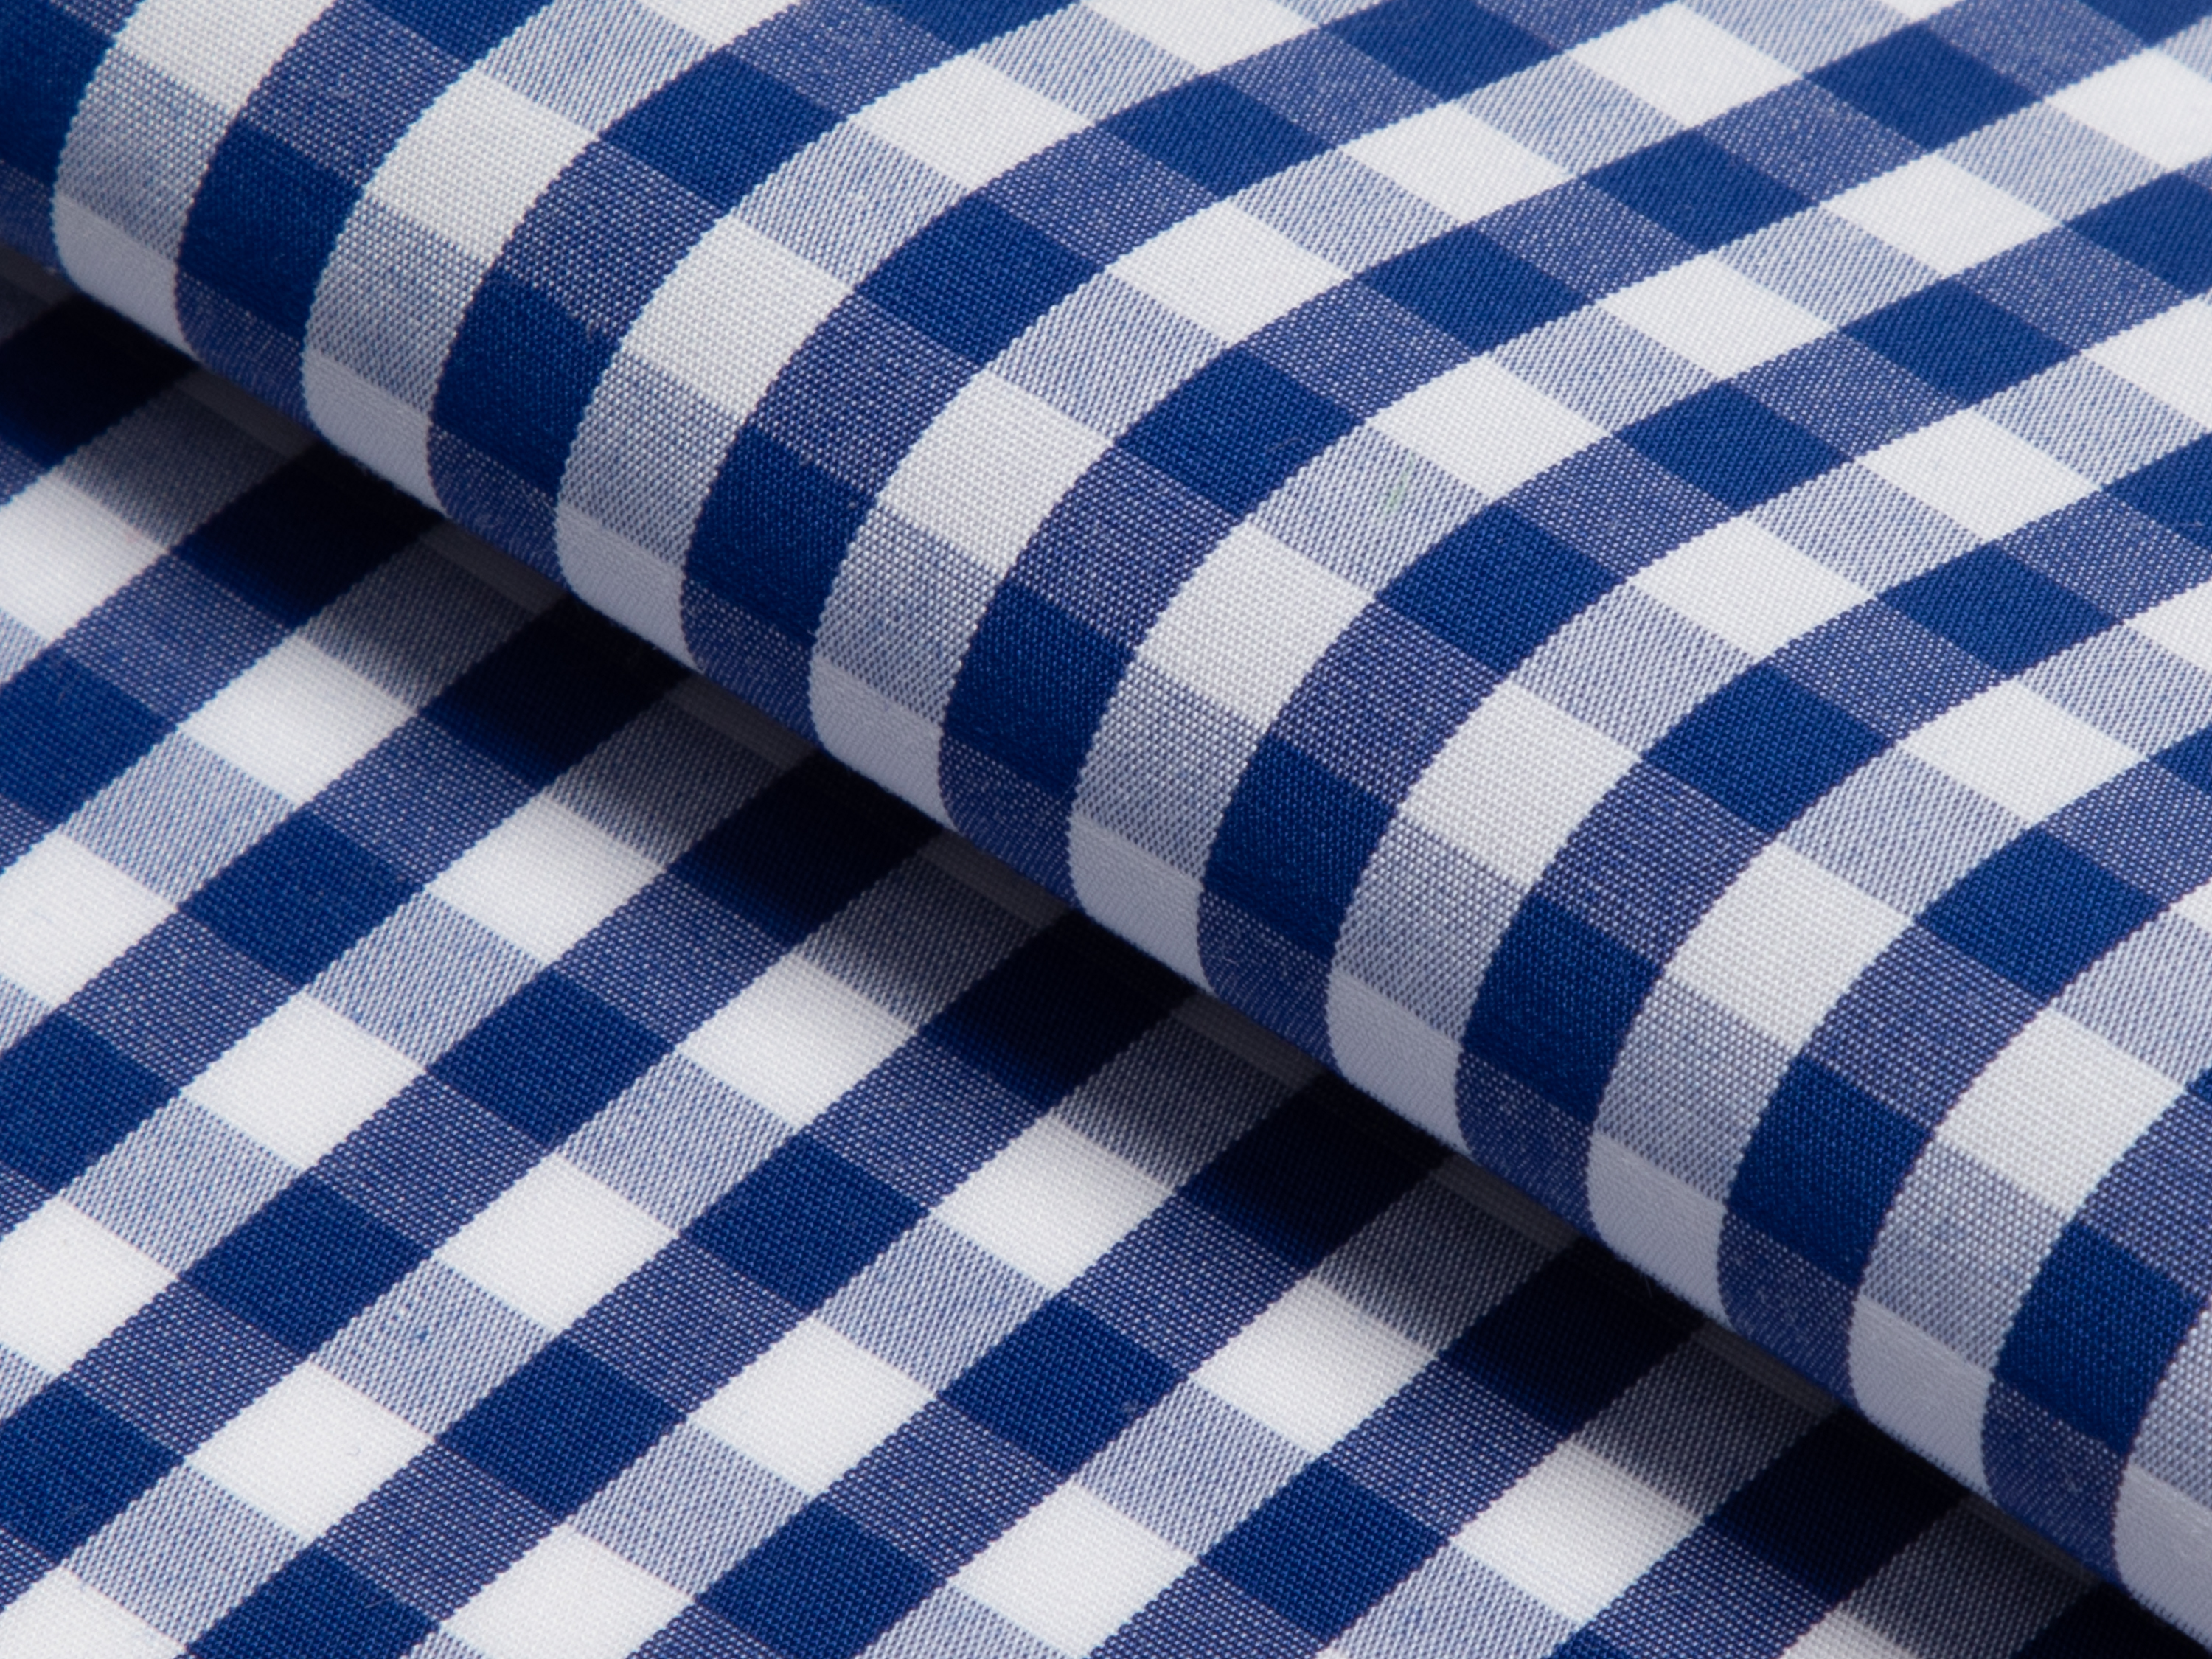 Buy tailor made shirts online - GINGHAM LUXURY  - Gingham Royal Blue